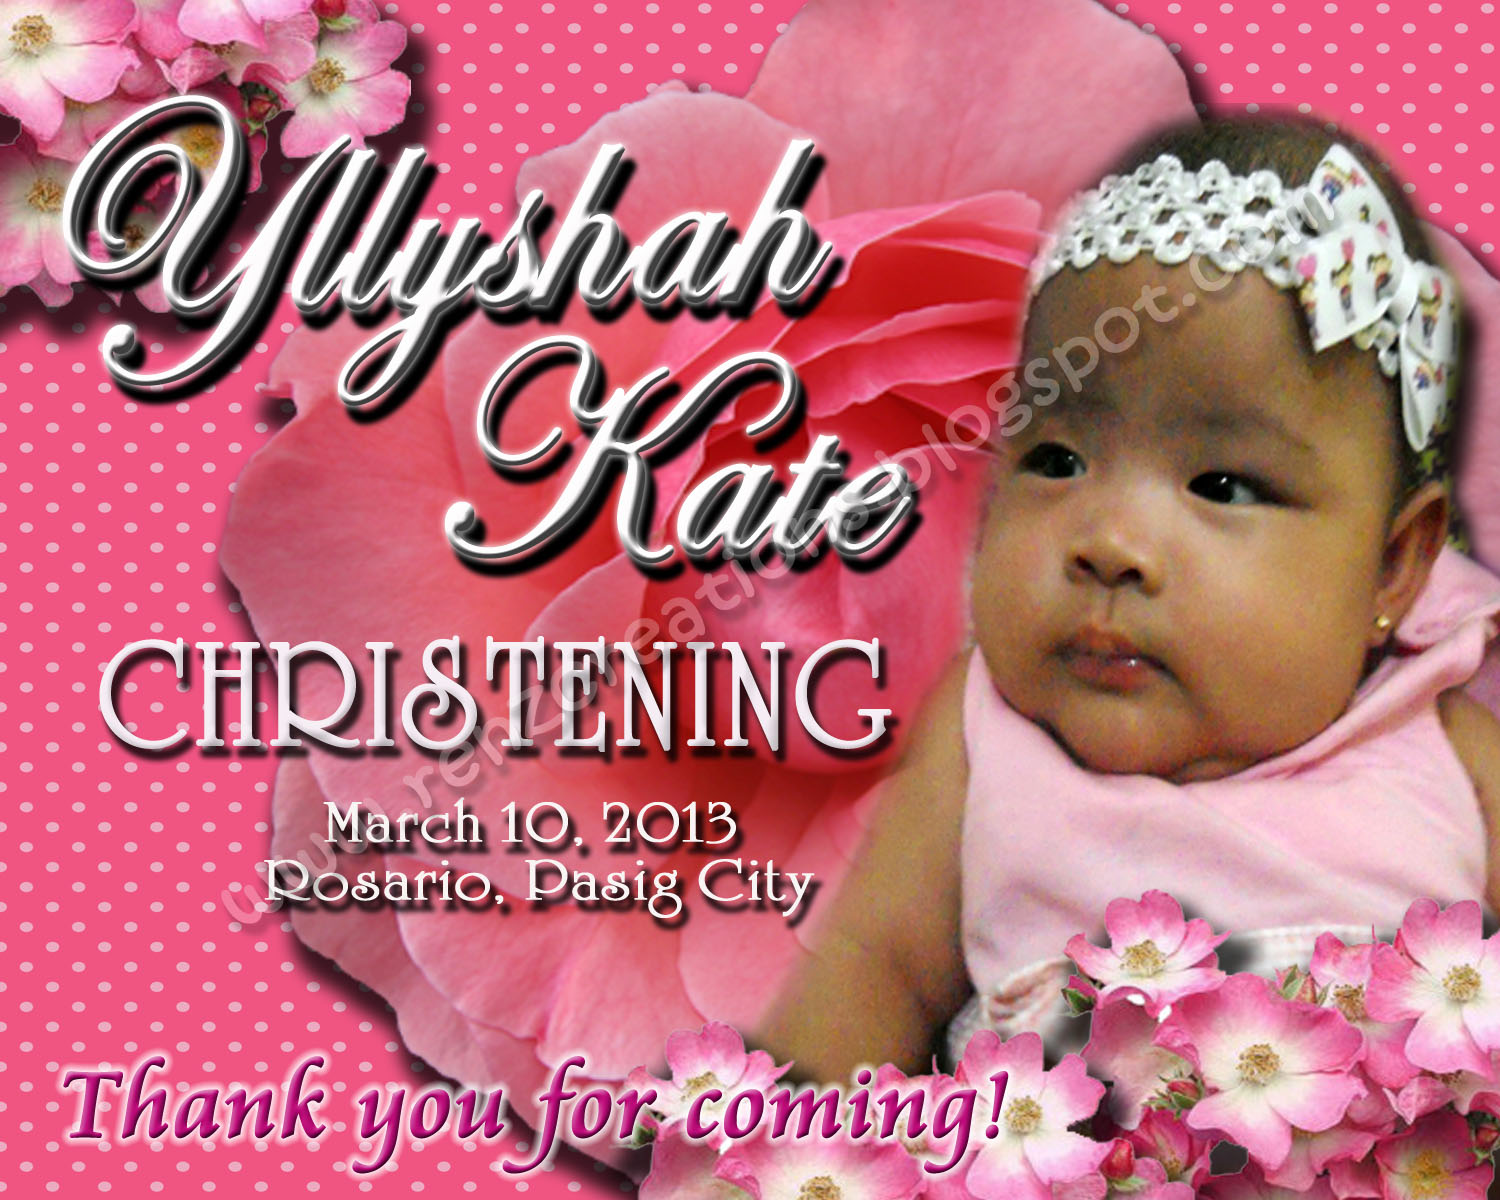 Renz creations invitations and giveaways yllyshah kate 39 s christening giveaways - Giveaways baptism ...